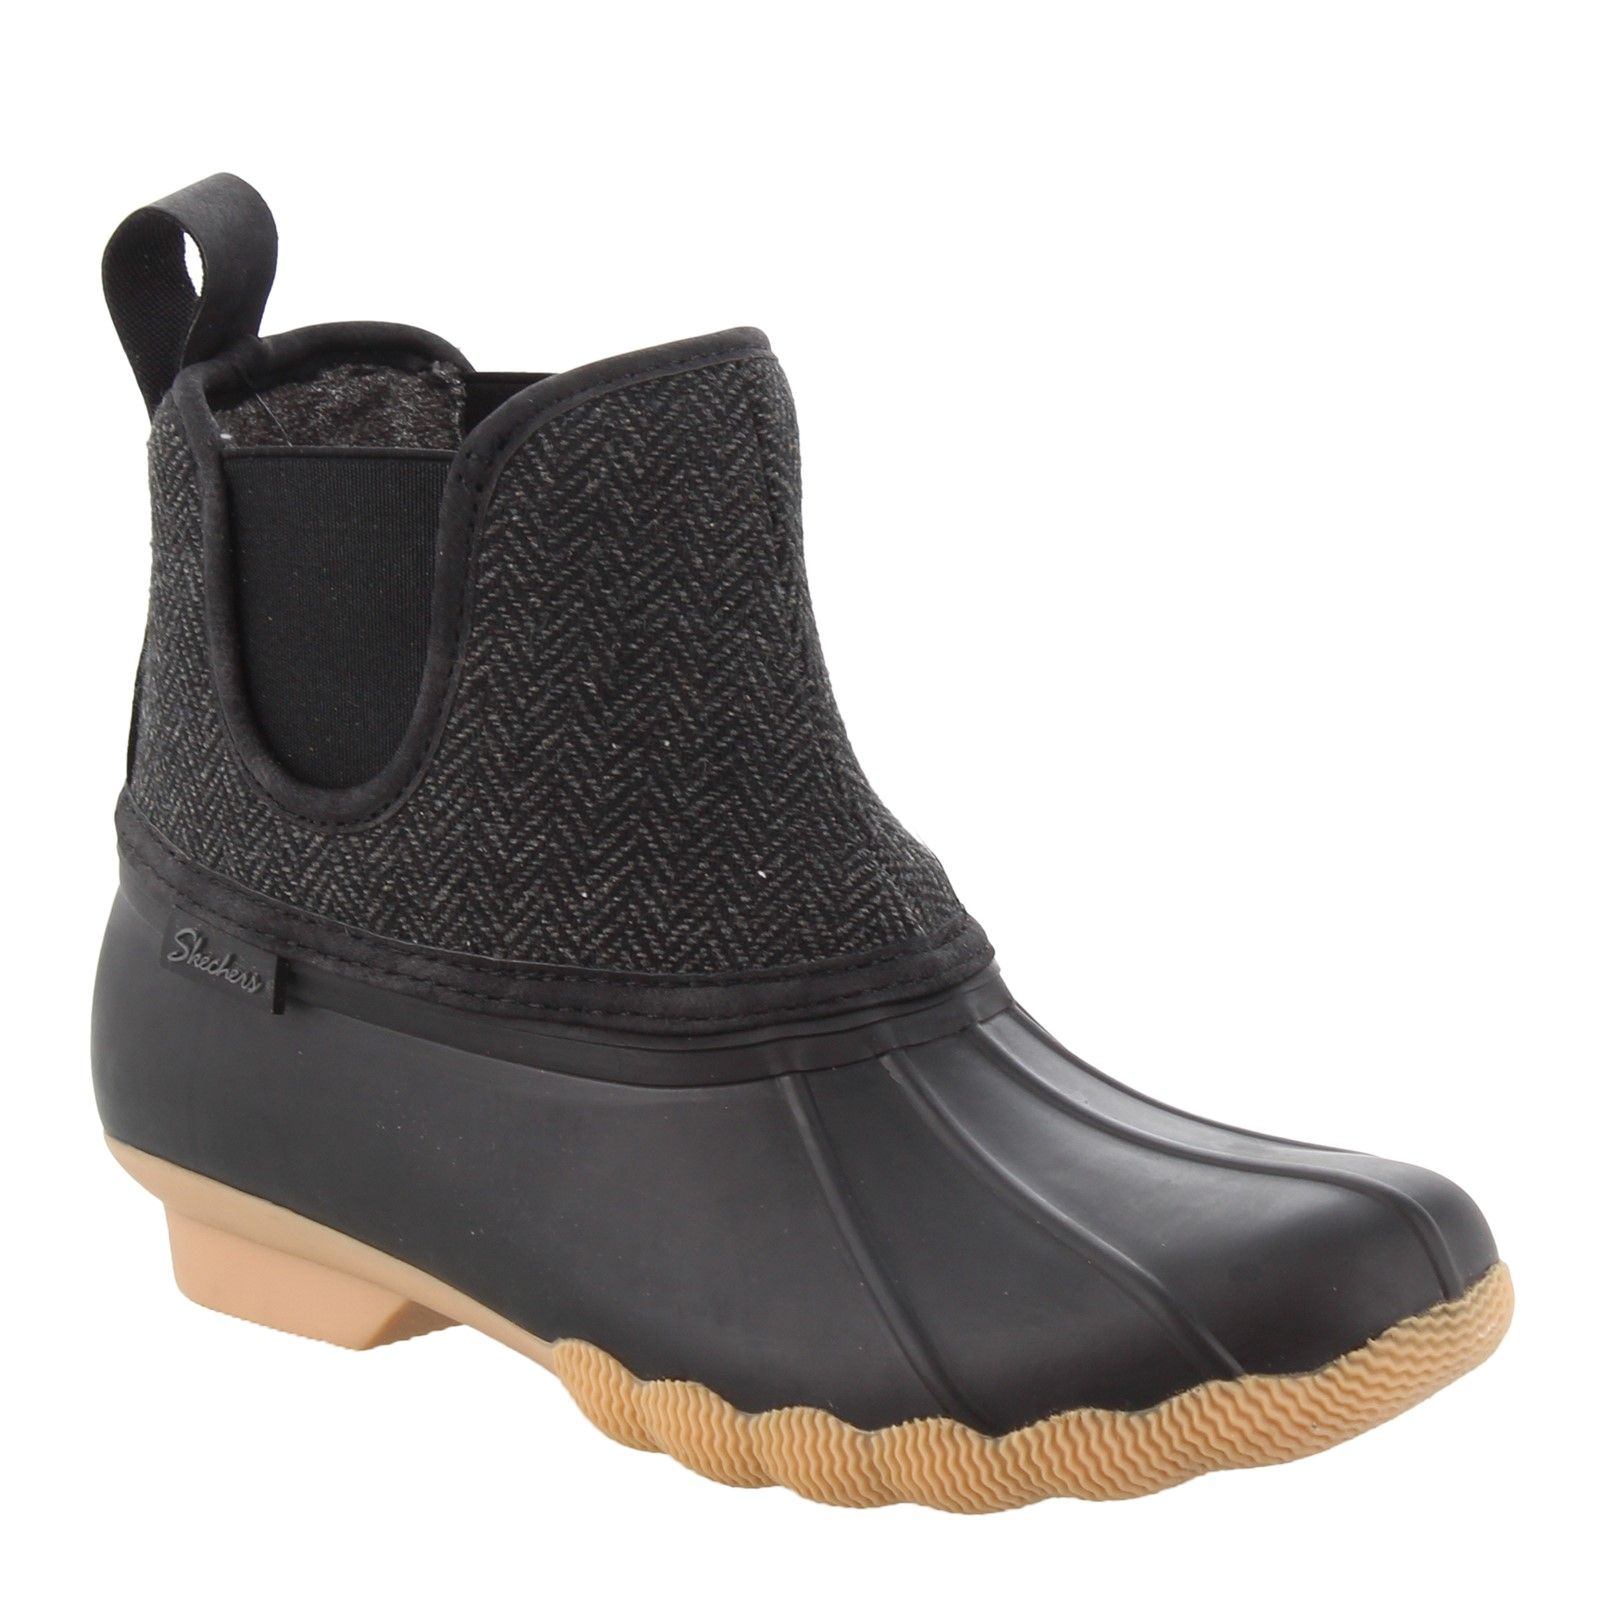 Skechers, Pond - Staying Dry Duck Boot